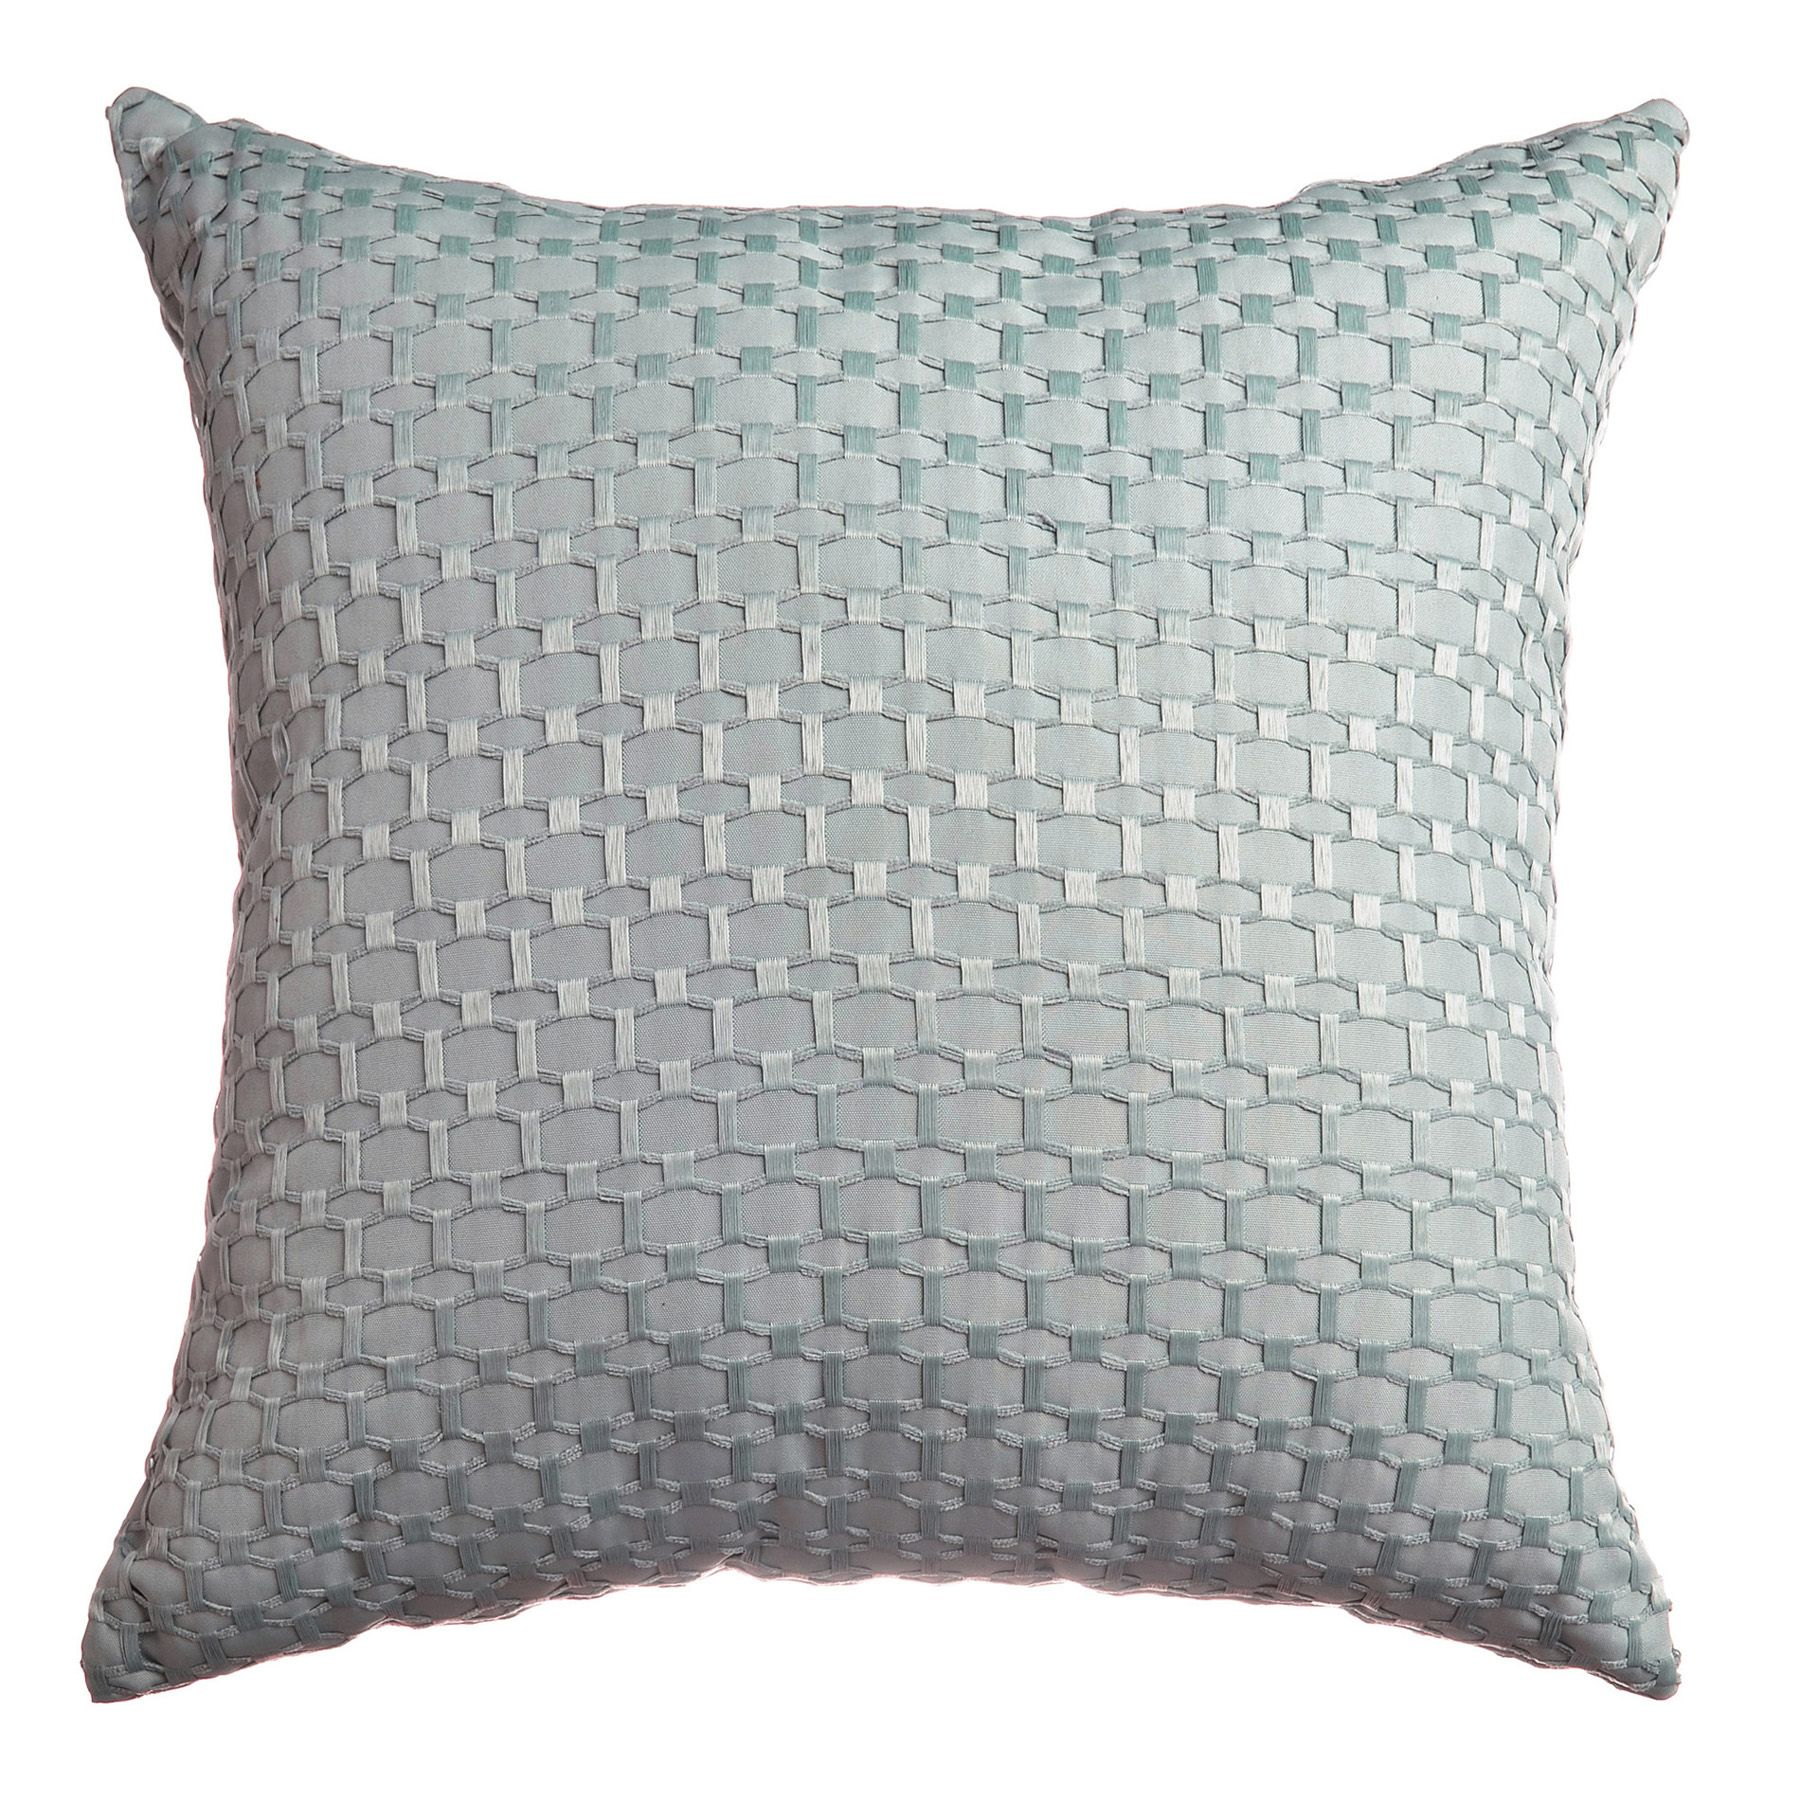 Decorative Pillows Kmart : Softline Home Fashions, Inc Dalton Seafoam 18x18 Decorative Pillow